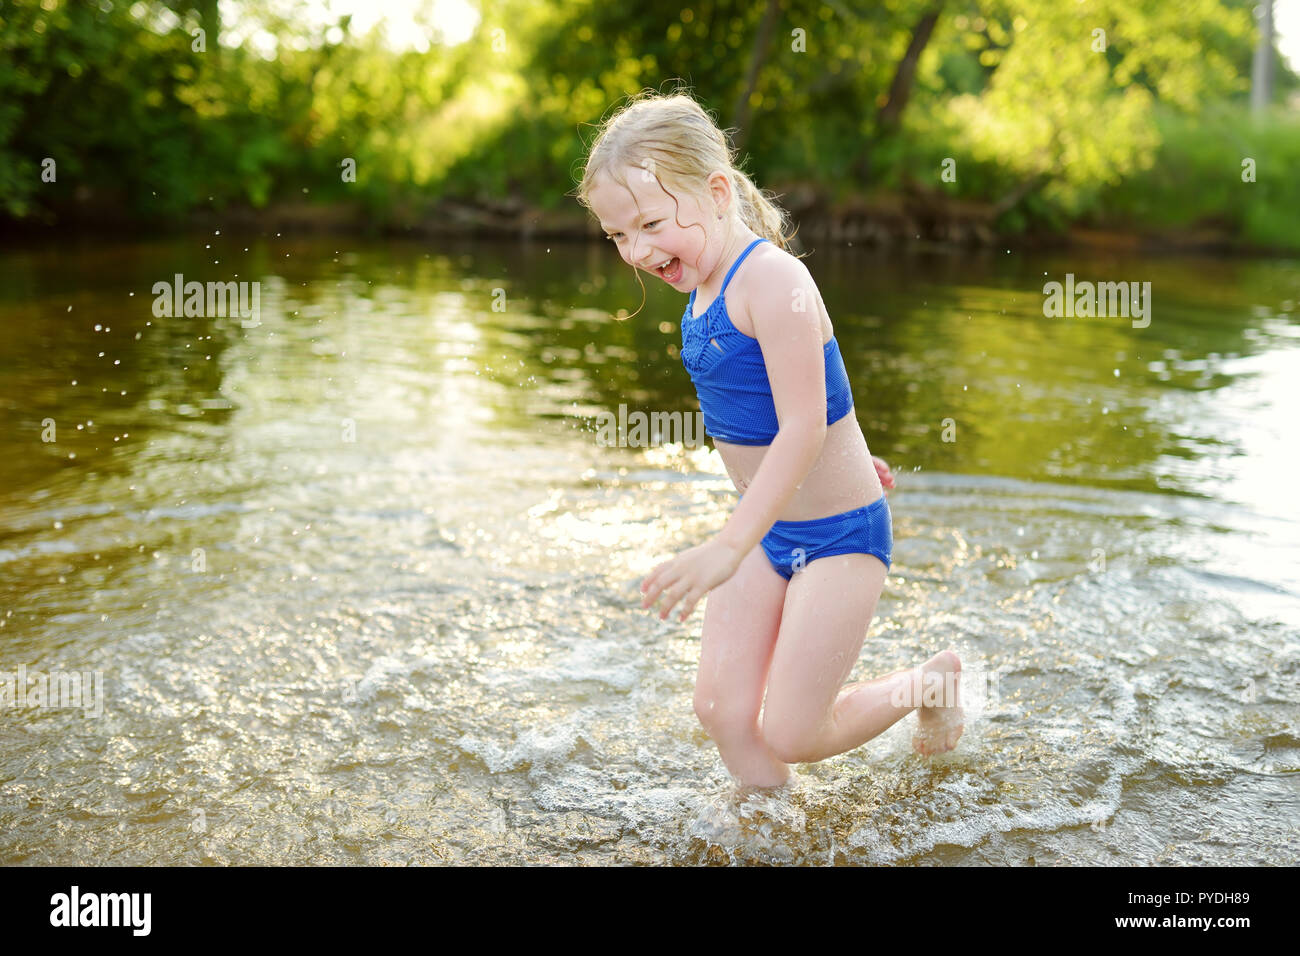 2609d91e6722 Cute little girl wearing swimsuit playing by a river on hot summer day.  Adorable child having fun outdoors during summer vacations. Water  activities f